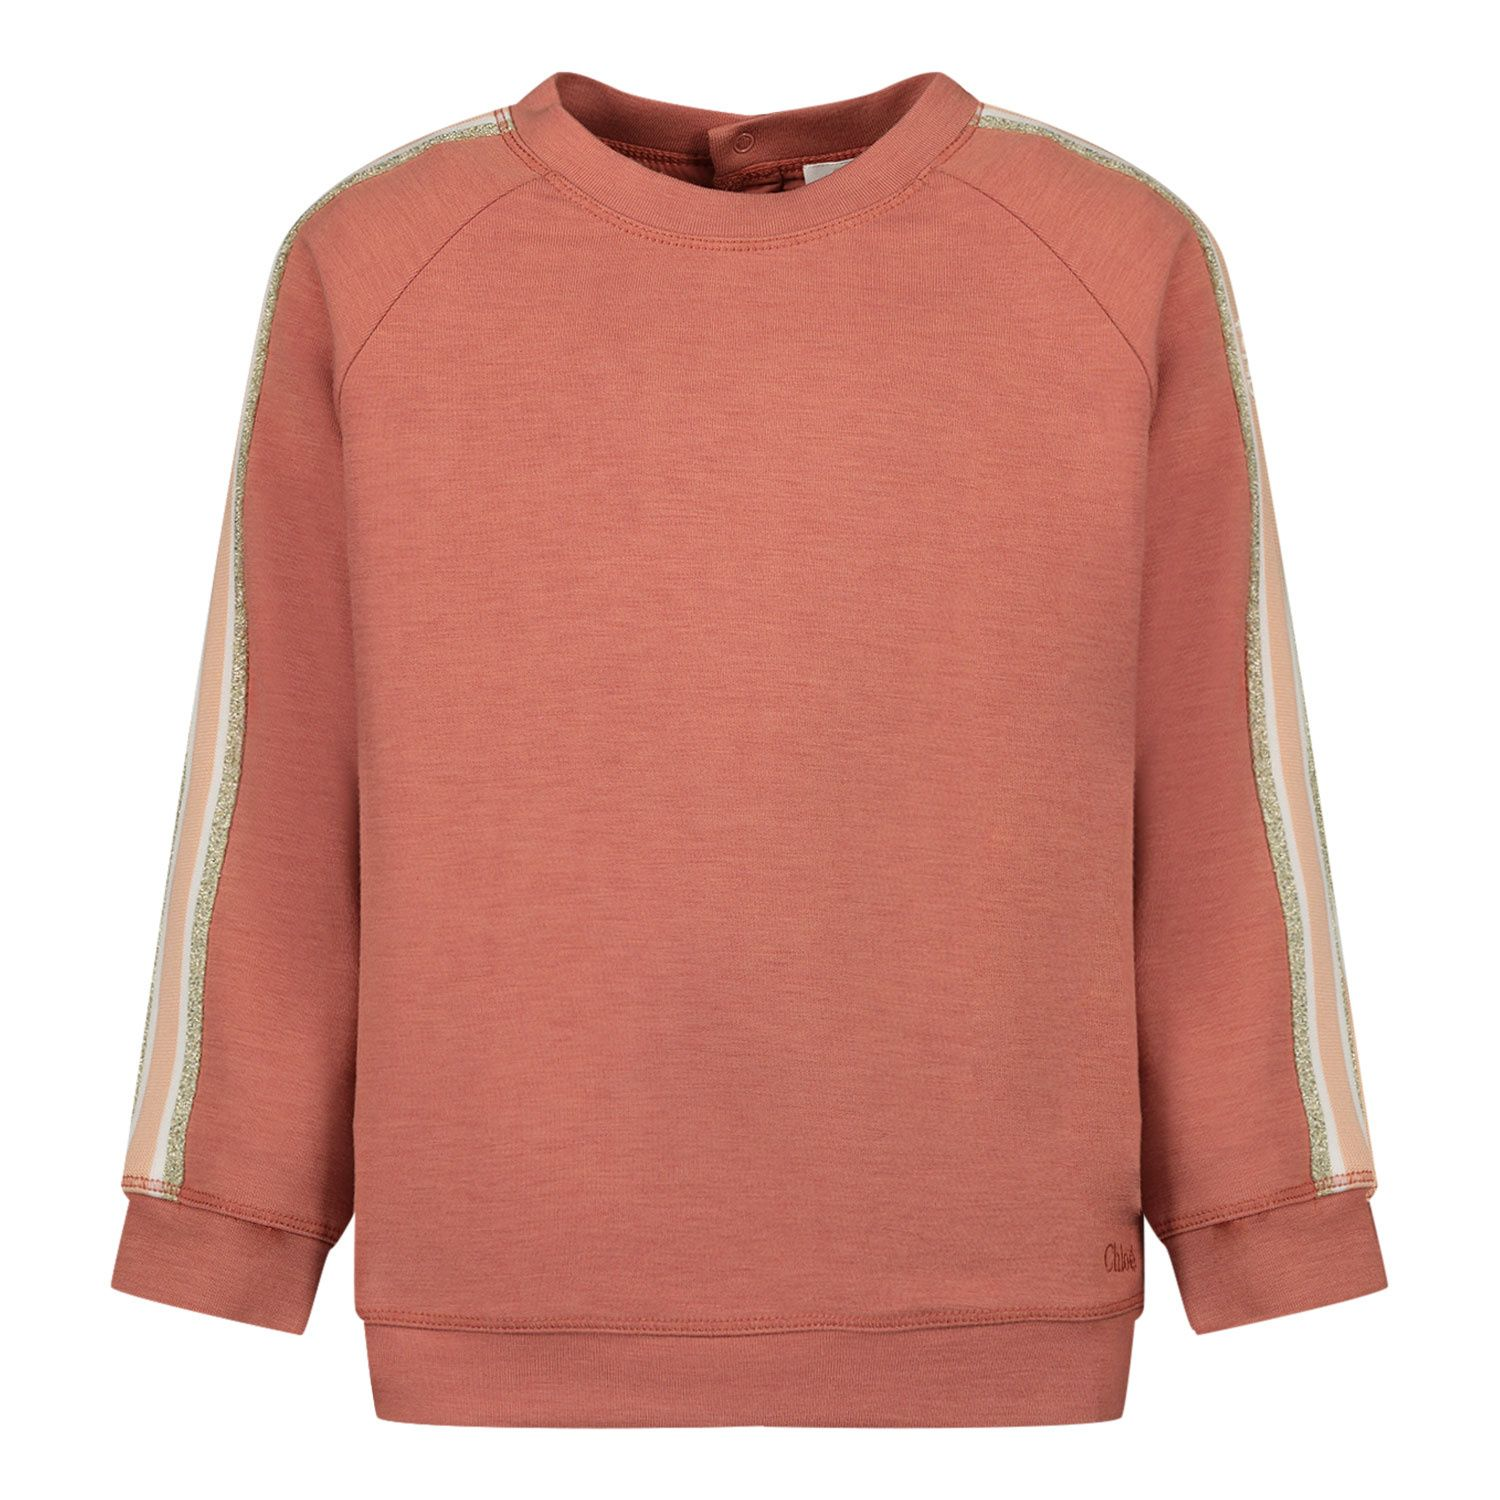 Picture of Chloé C05375 baby sweater brown